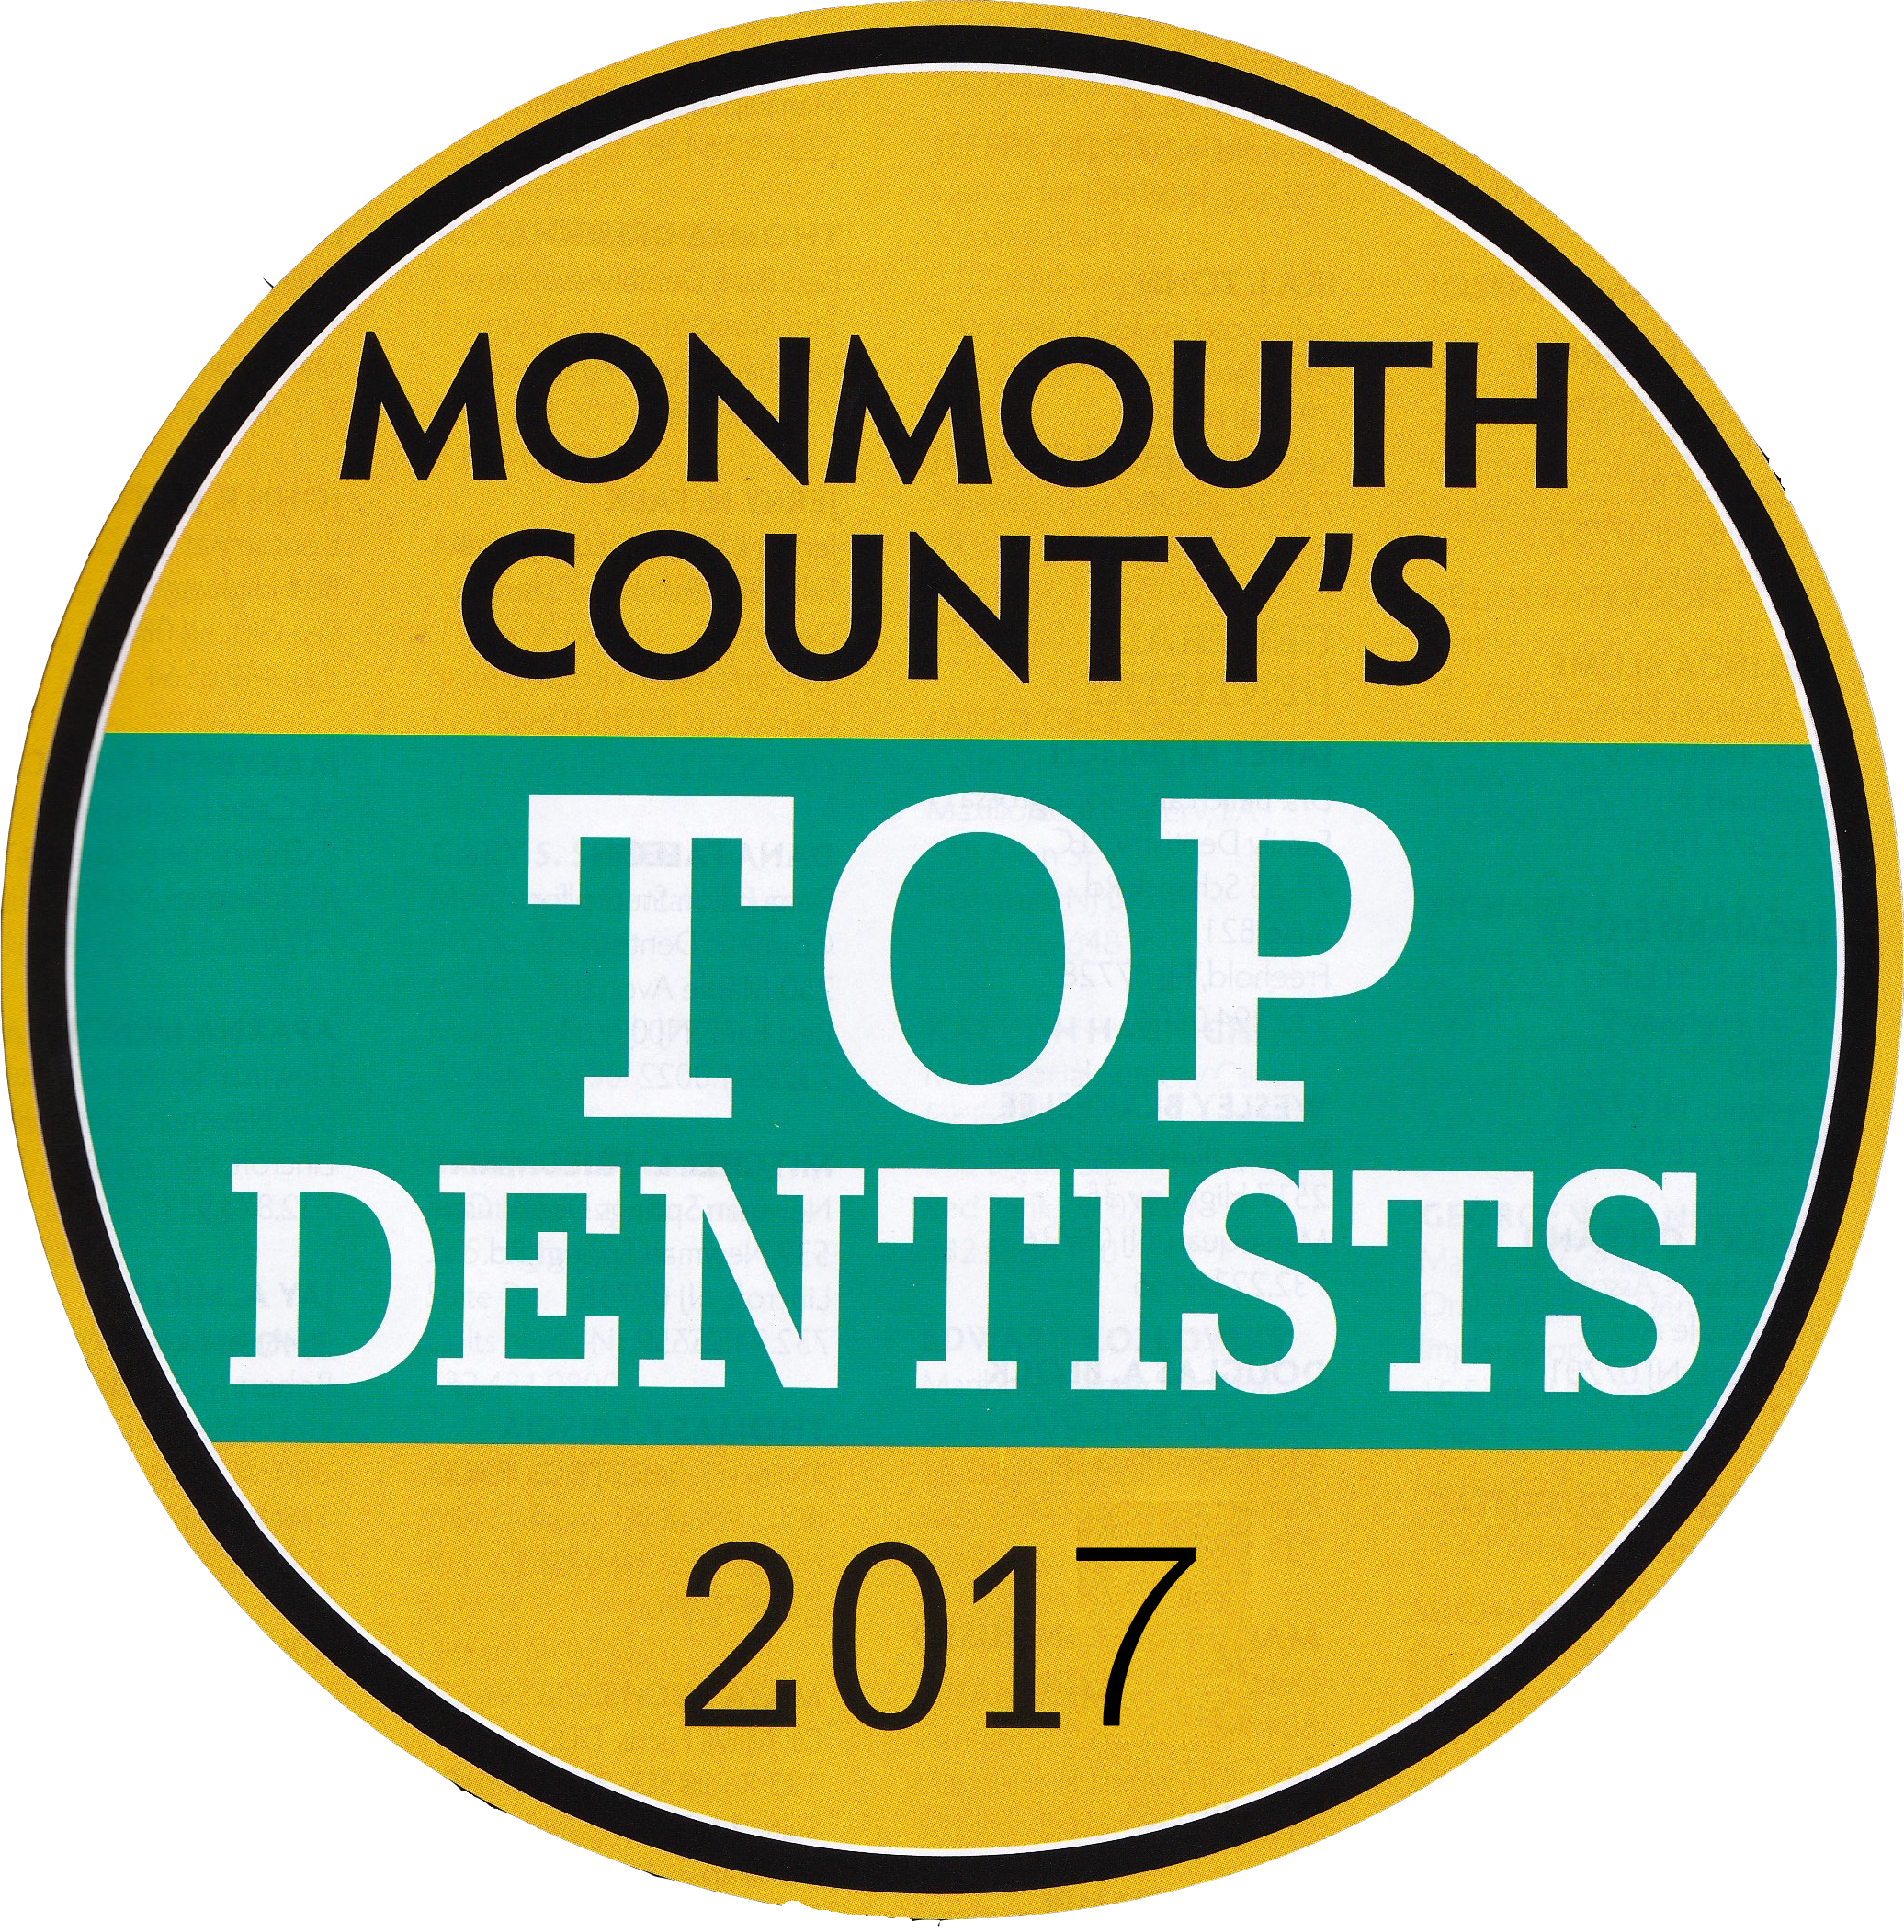 Monmouth Top Cosmetic Dentistry